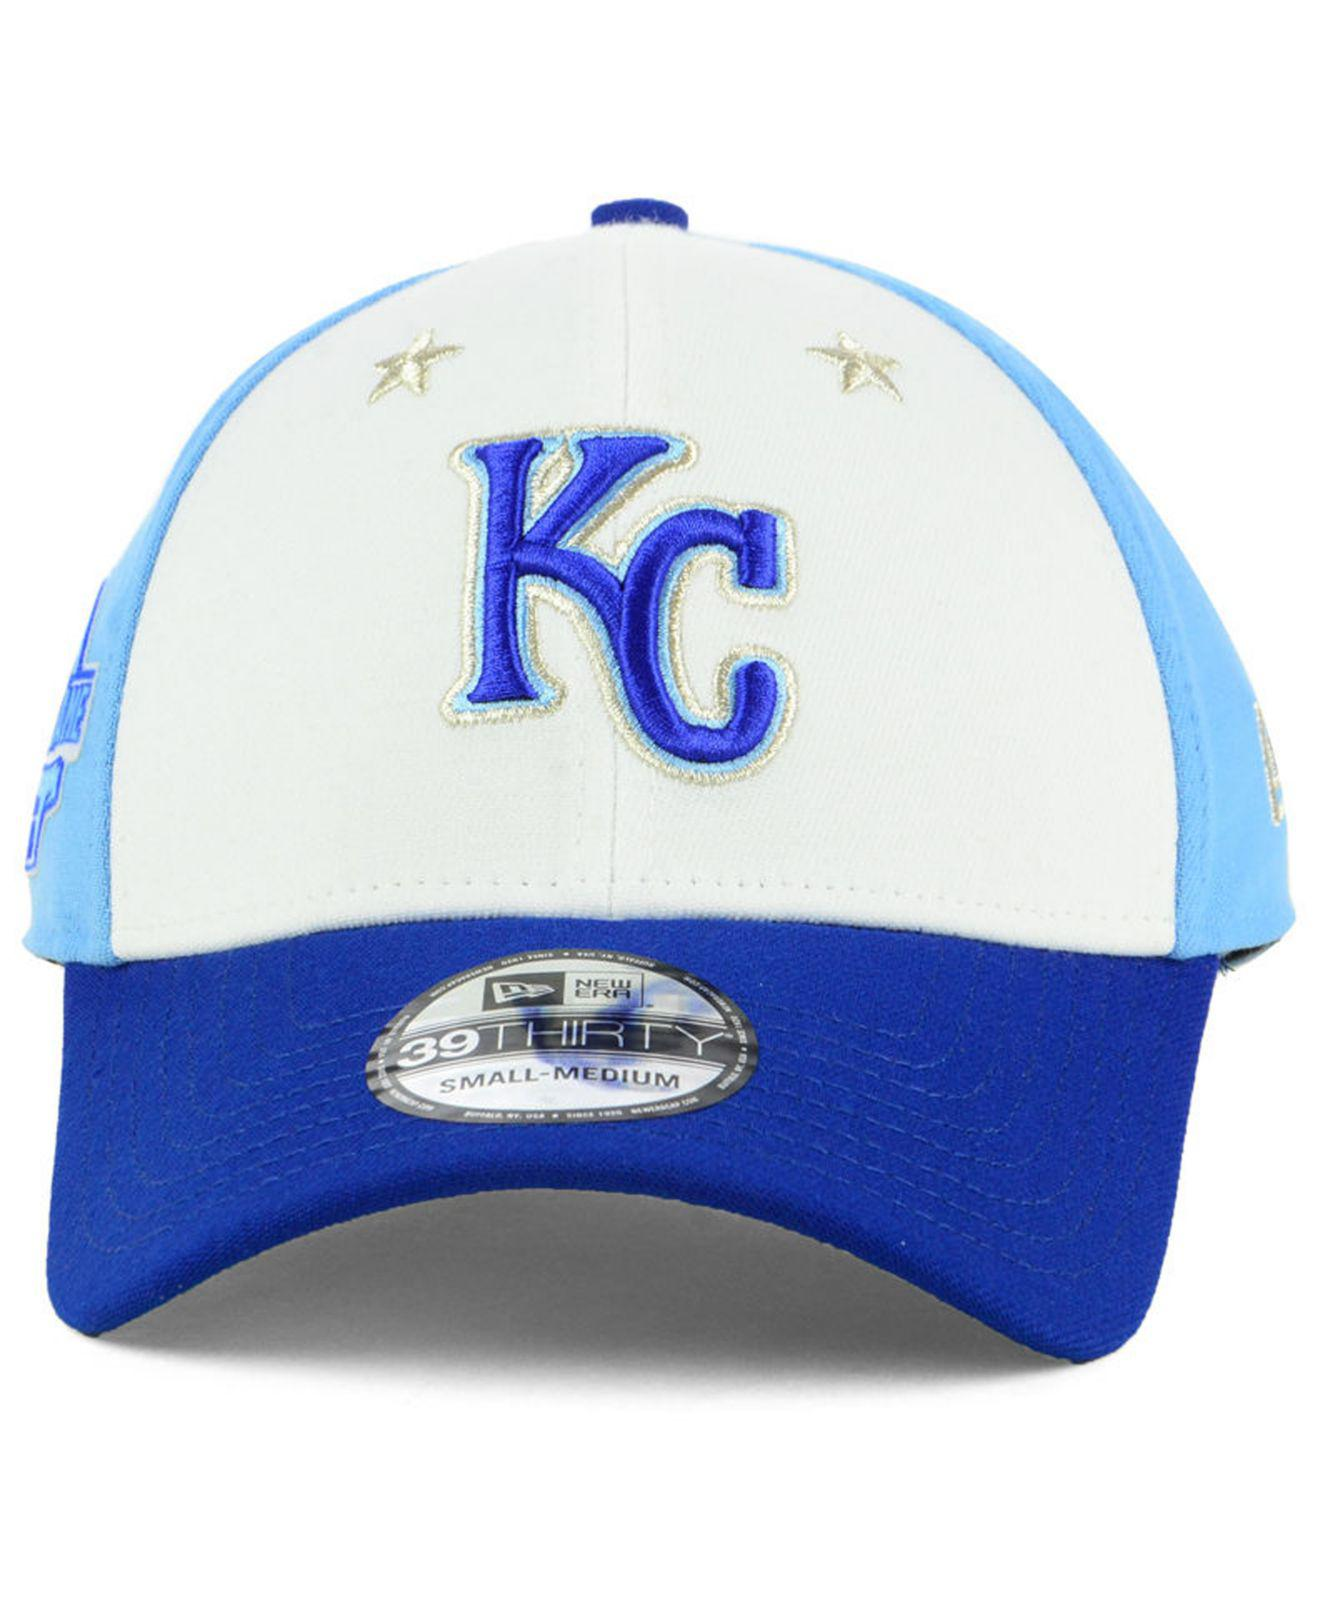 b41a1c8f02d Lyst - KTZ Kansas City Royals All Star Game 39thirty Stretch Fitted Cap  2018 in Blue for Men